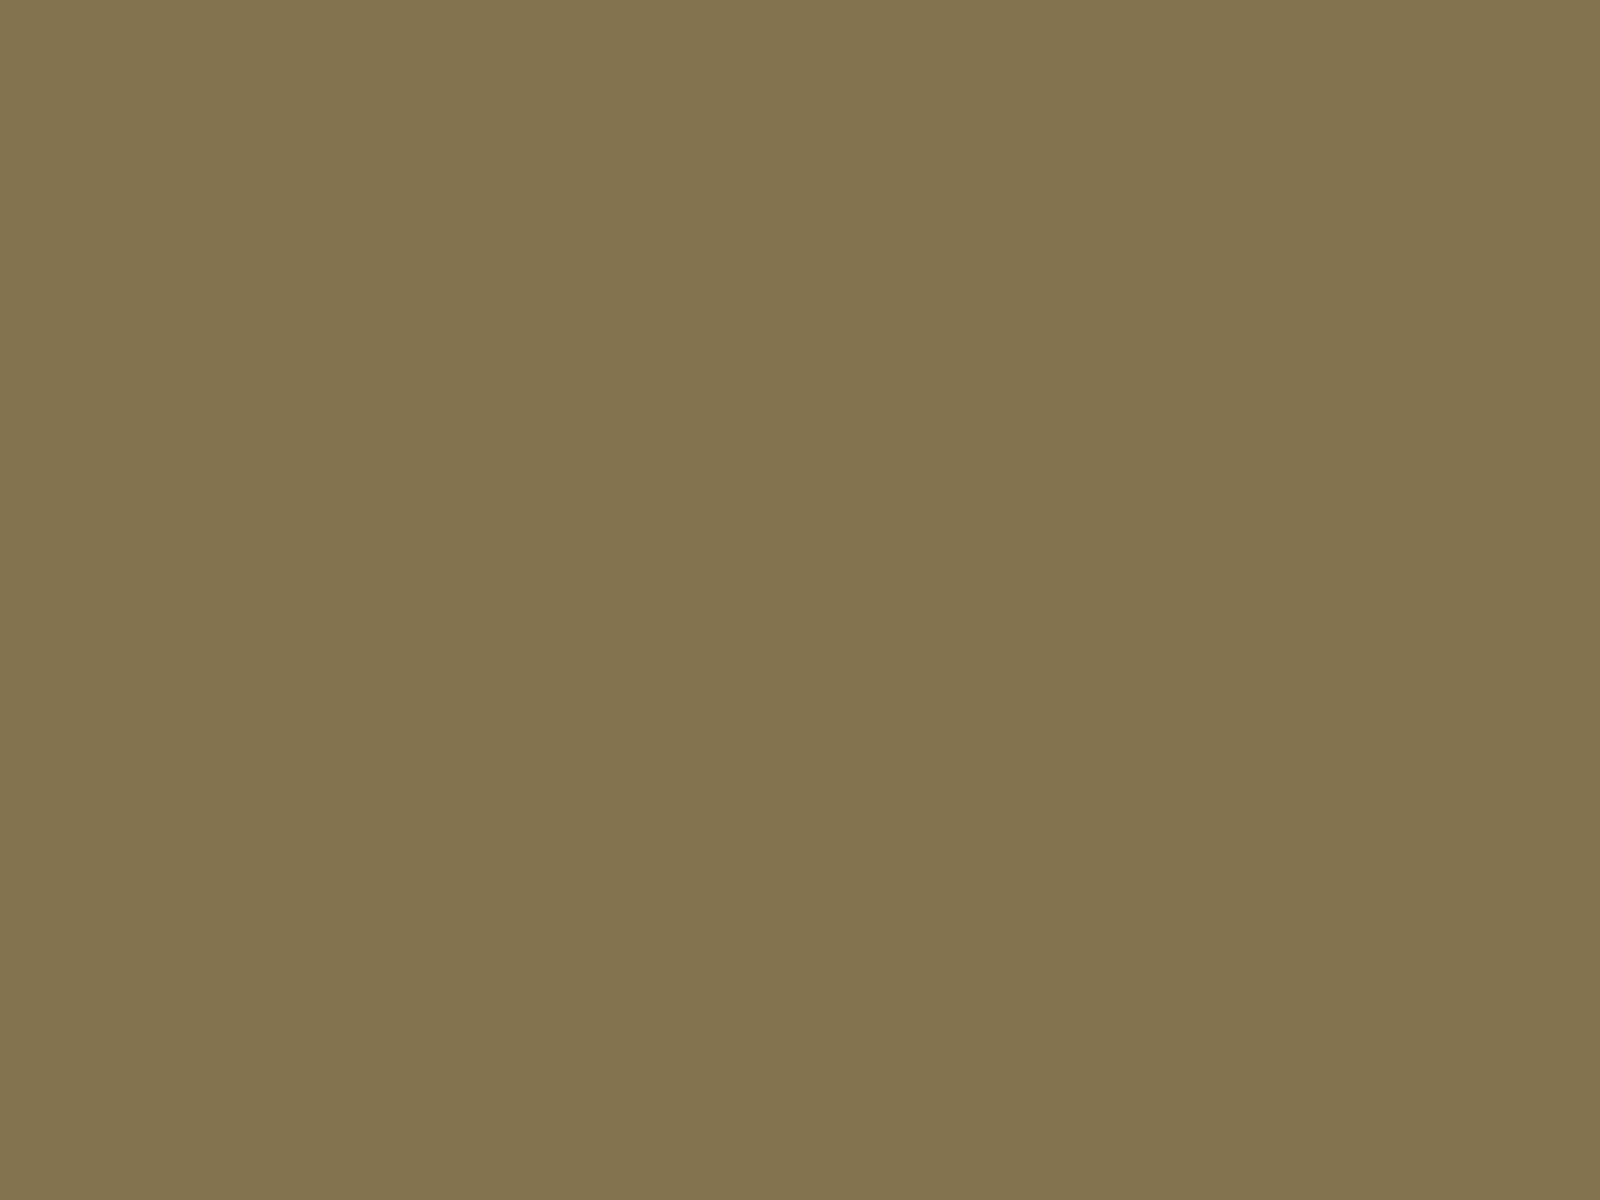 1600x1200 Gold Fusion Solid Color Background